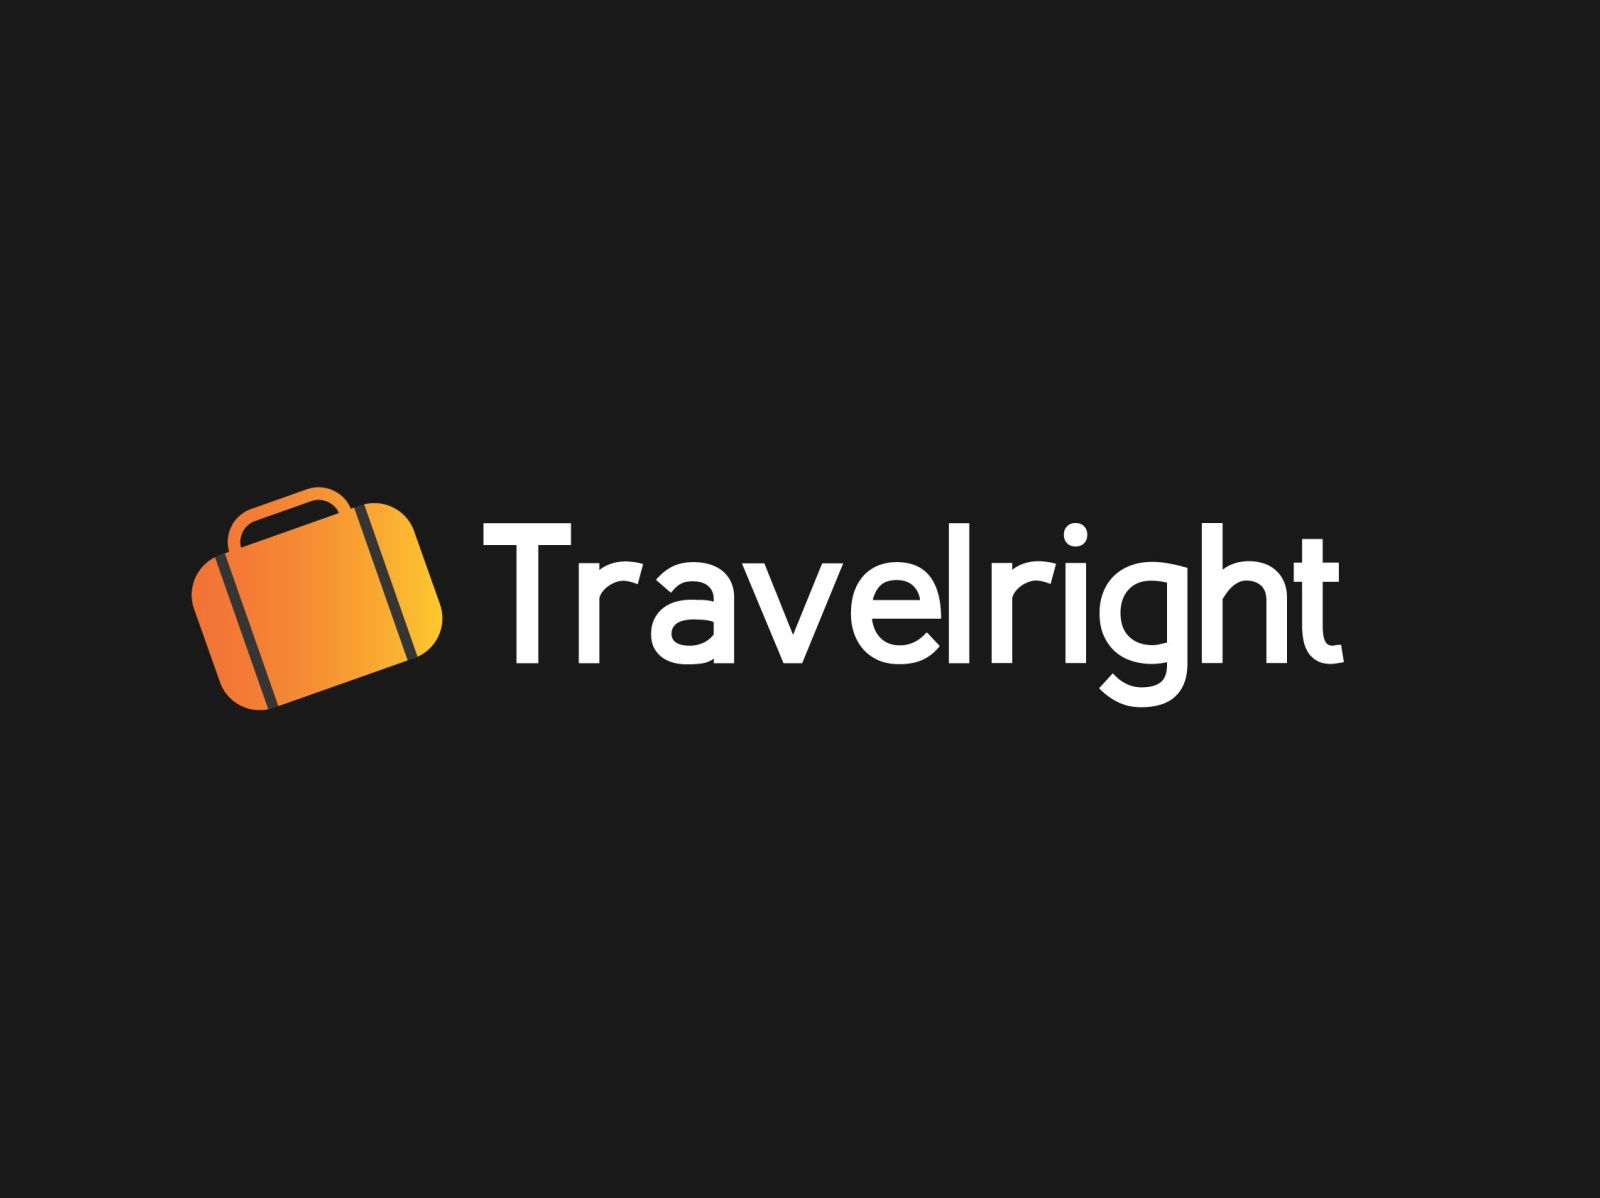 Travelright logo design by Eeshan Tiwari